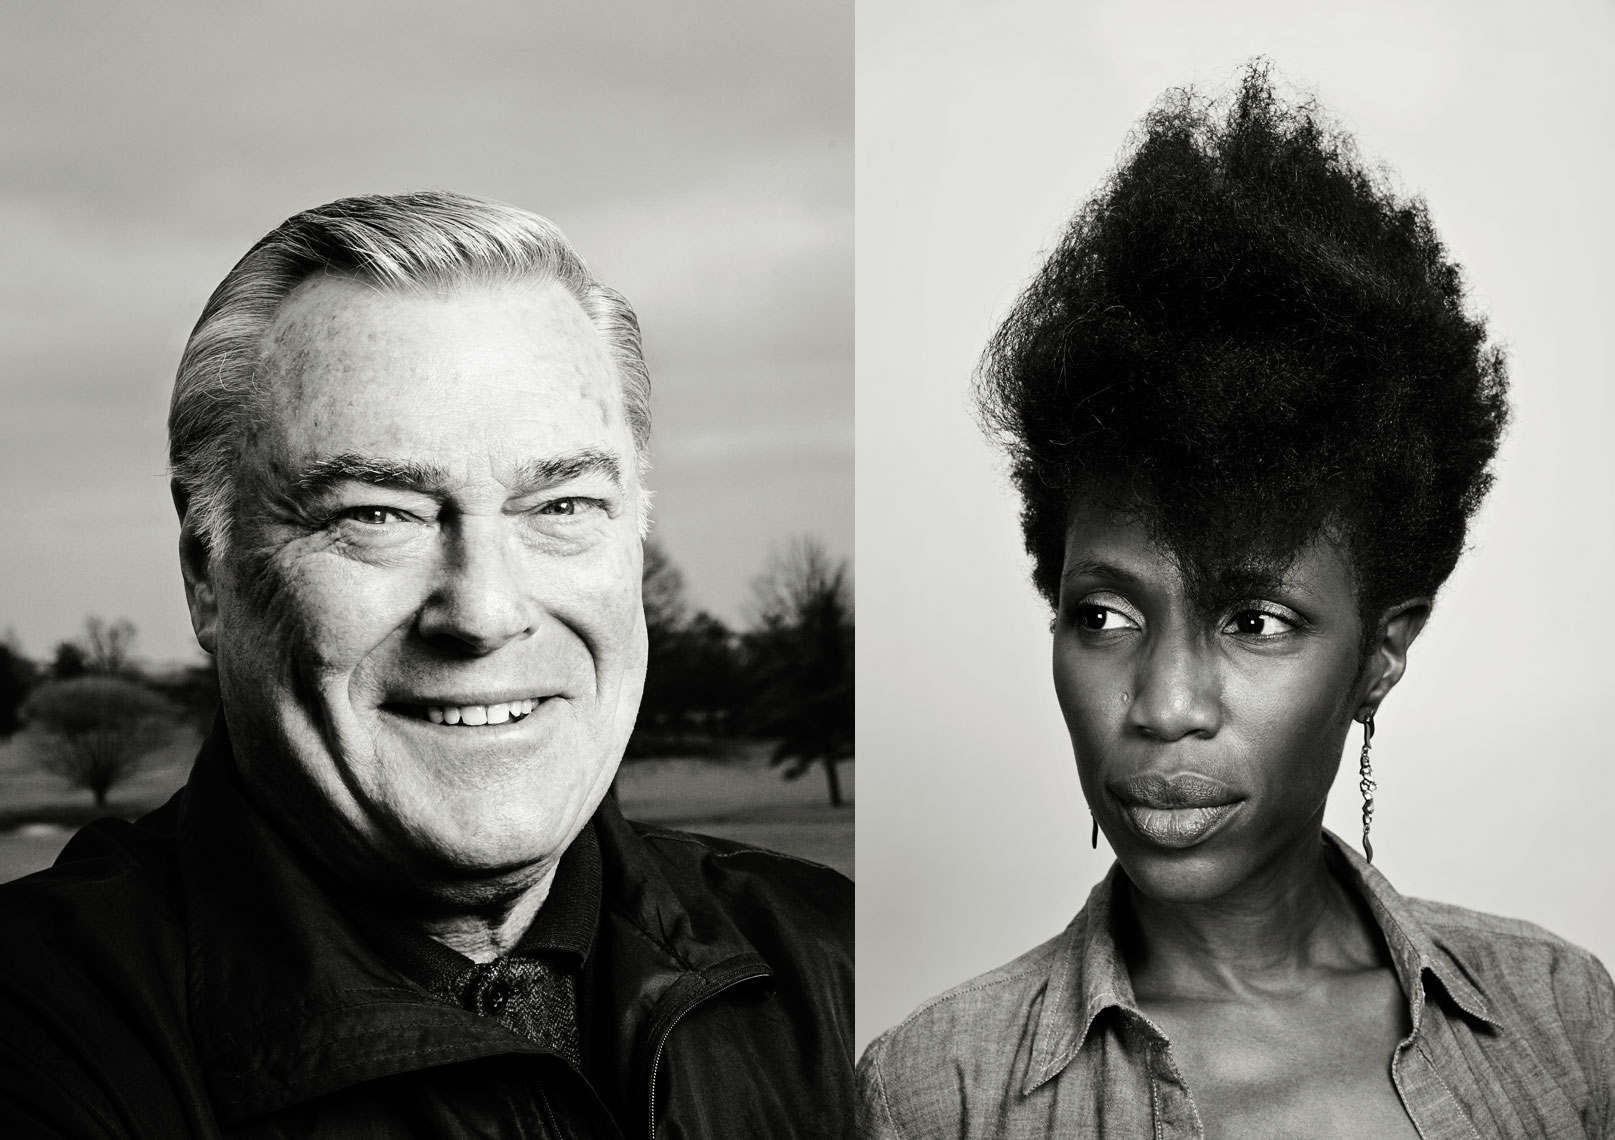 Black and white photographic portraits of man and AA female